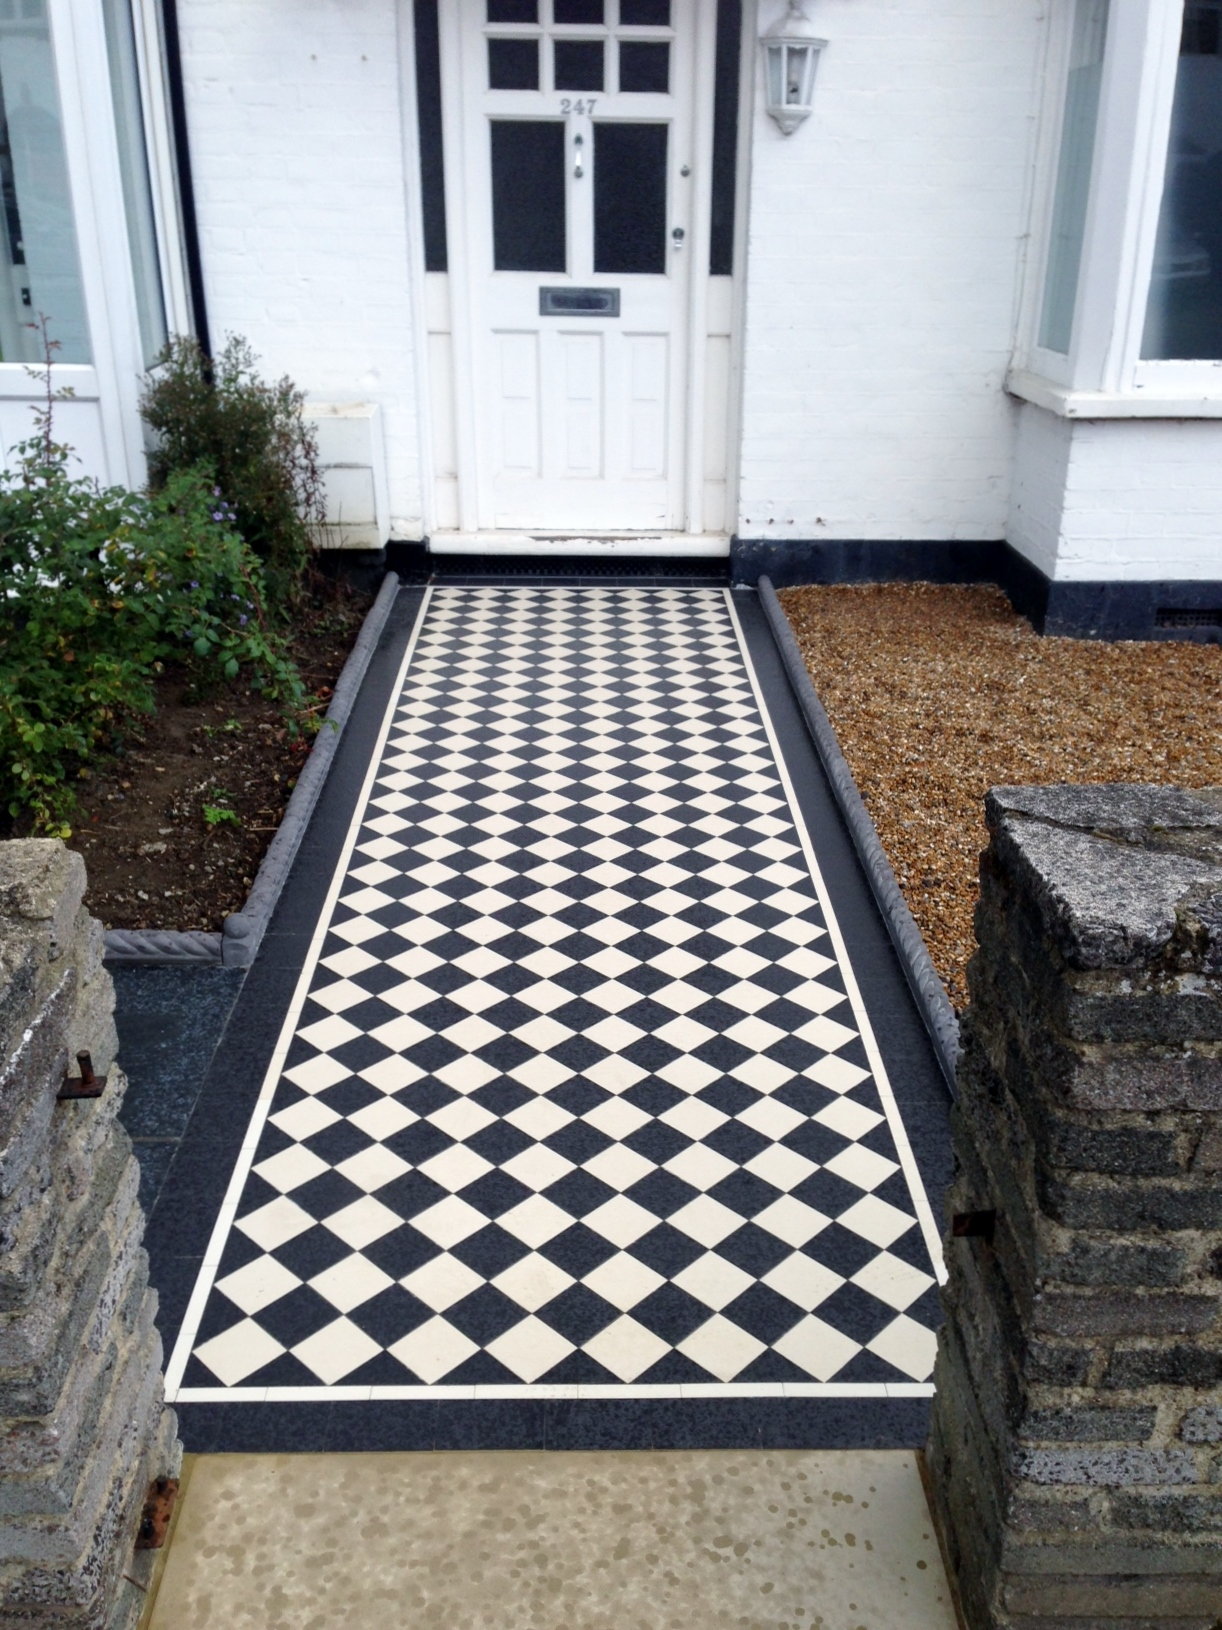 Victorian black and white mosaic tile garden path rope edge tile brockley lea catford london (1)